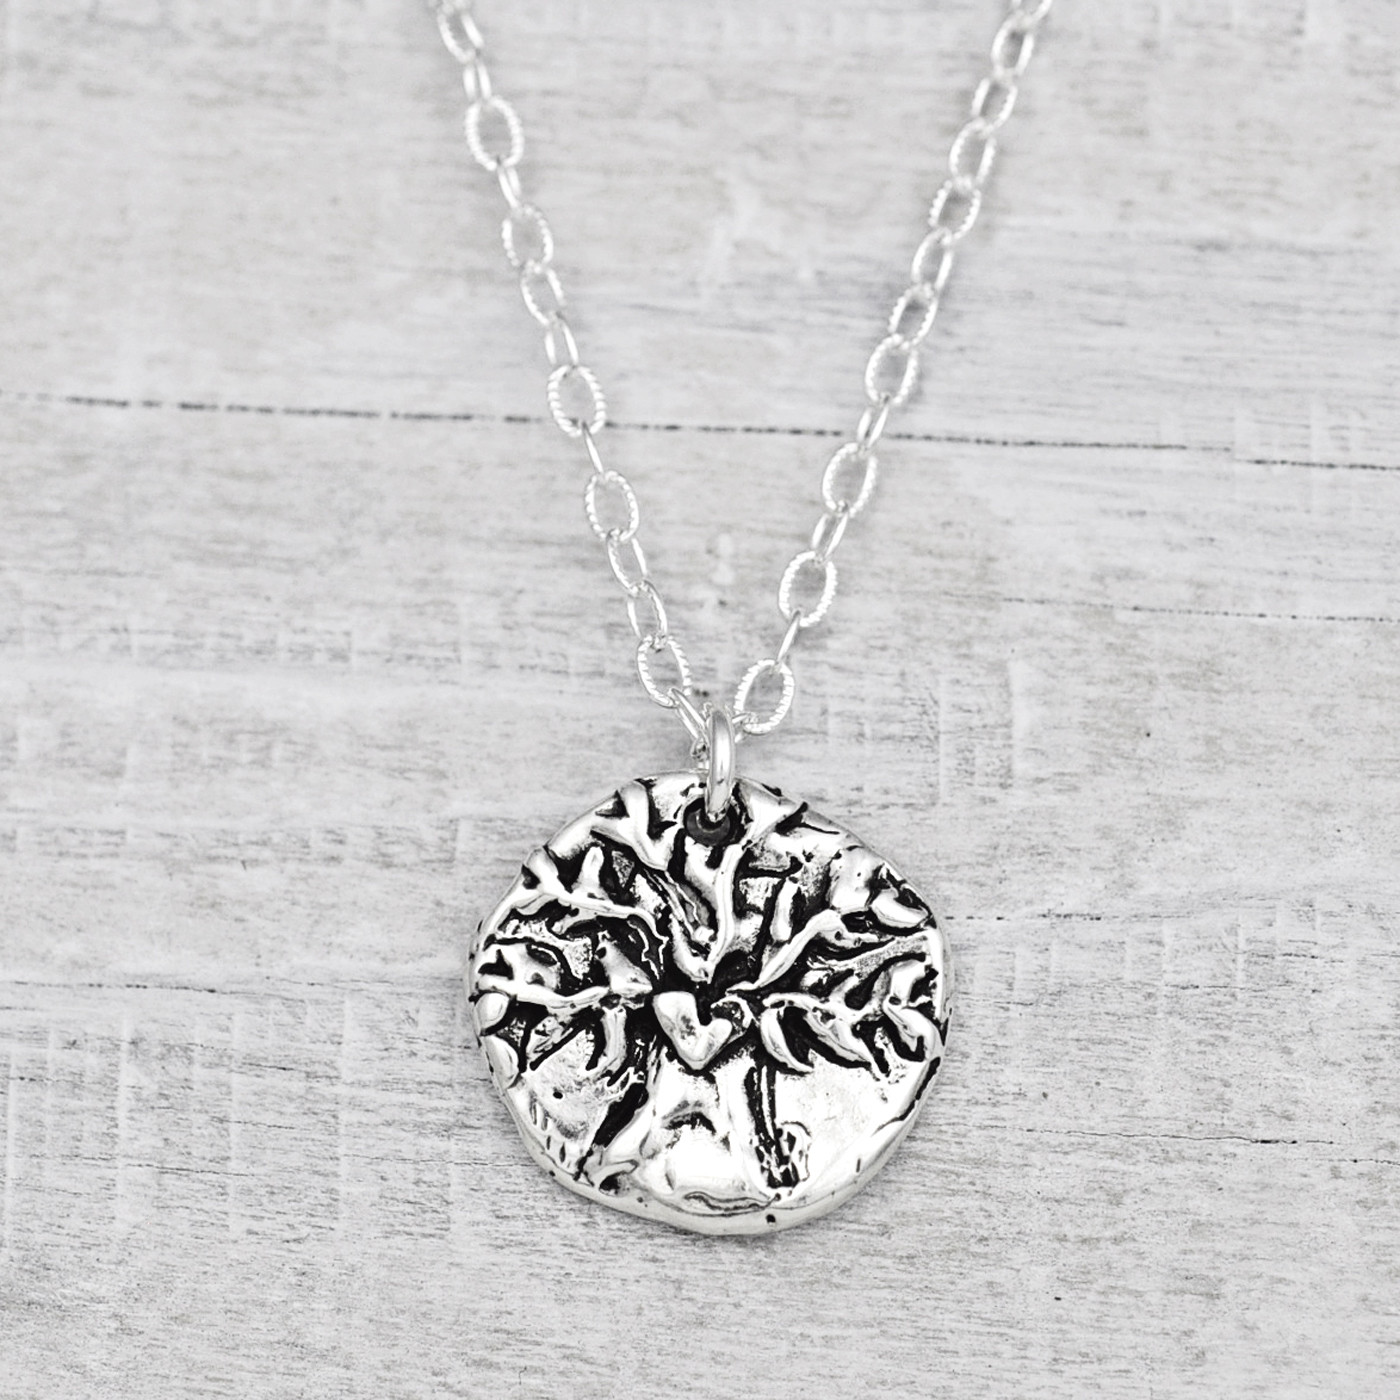 WALK BOLDLY, GROW WISE Necklace $64